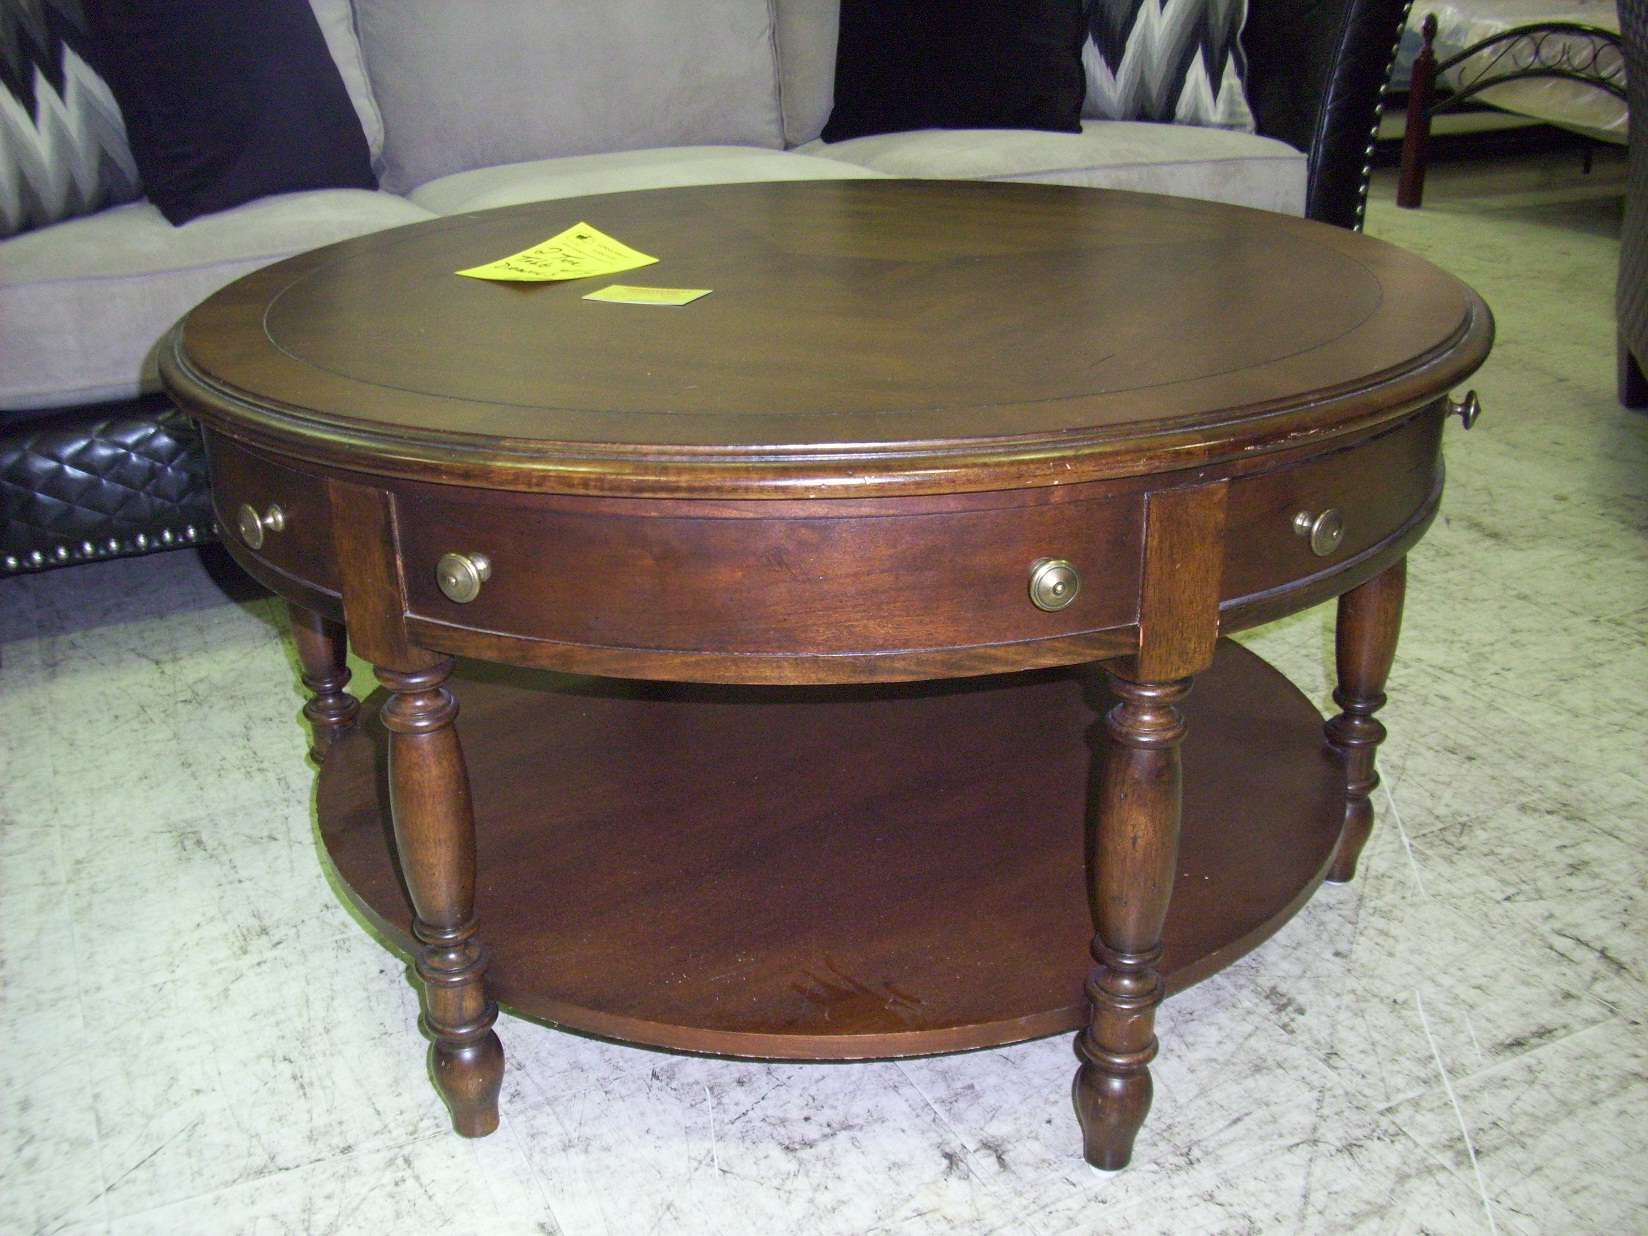 Round Coffee Tables With Glass Top Wood Coffee Table With Drawer Regarding Trendy Round Coffee Tables With Drawer (View 2 of 20)